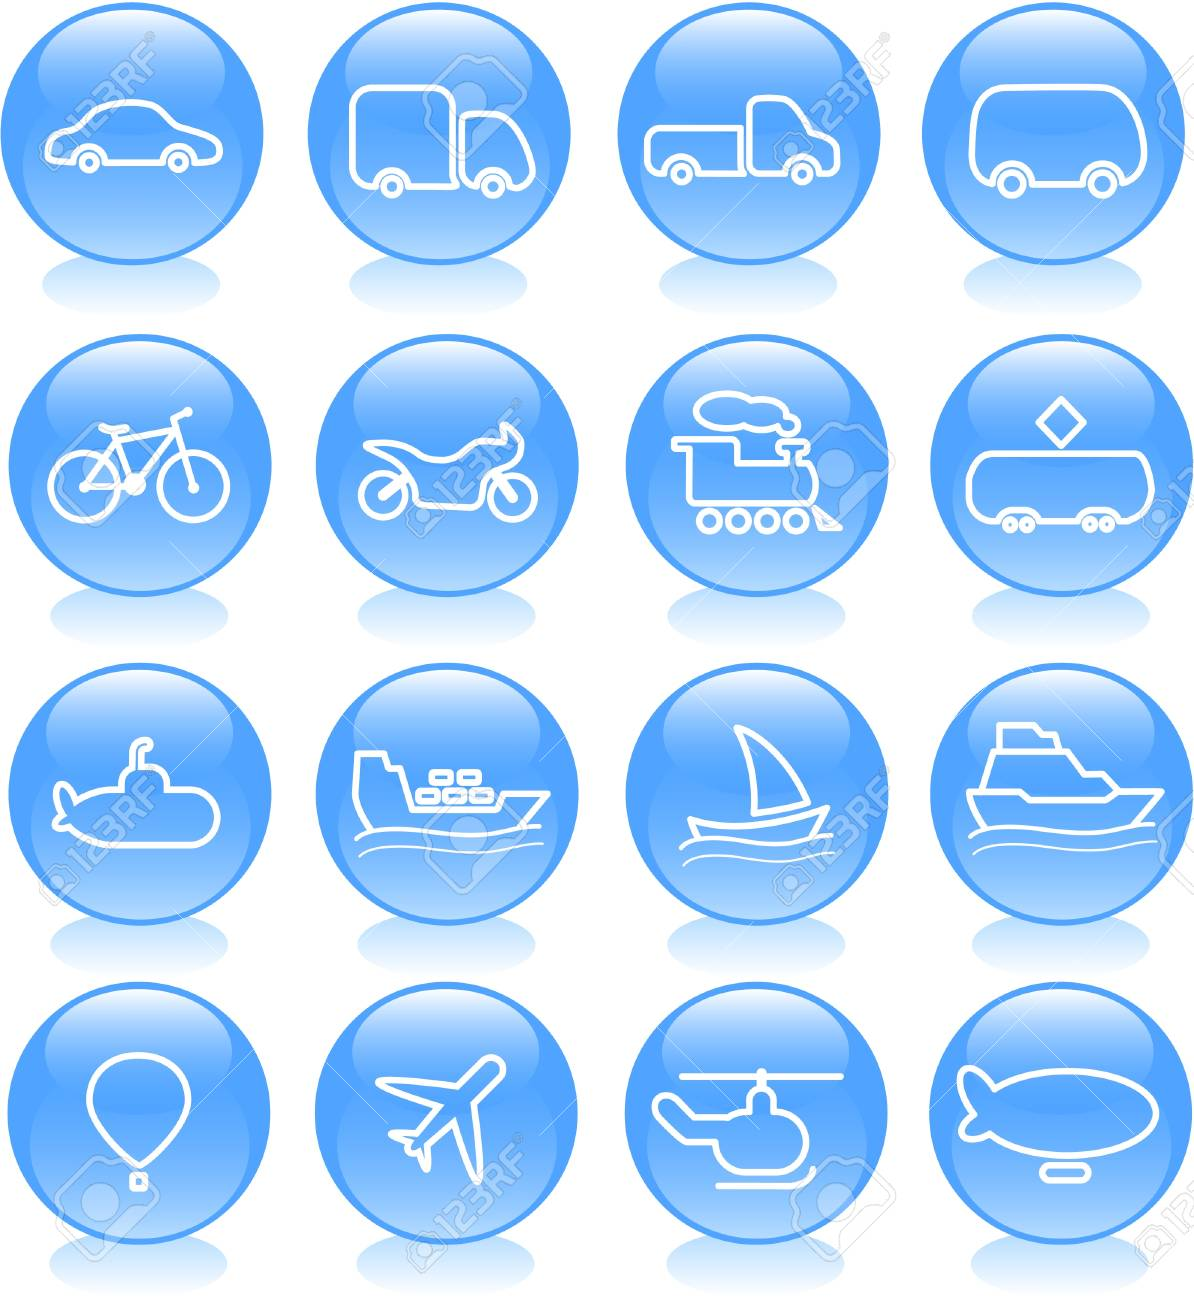 Travel and transportation vector icons Stock Vector - 5169688